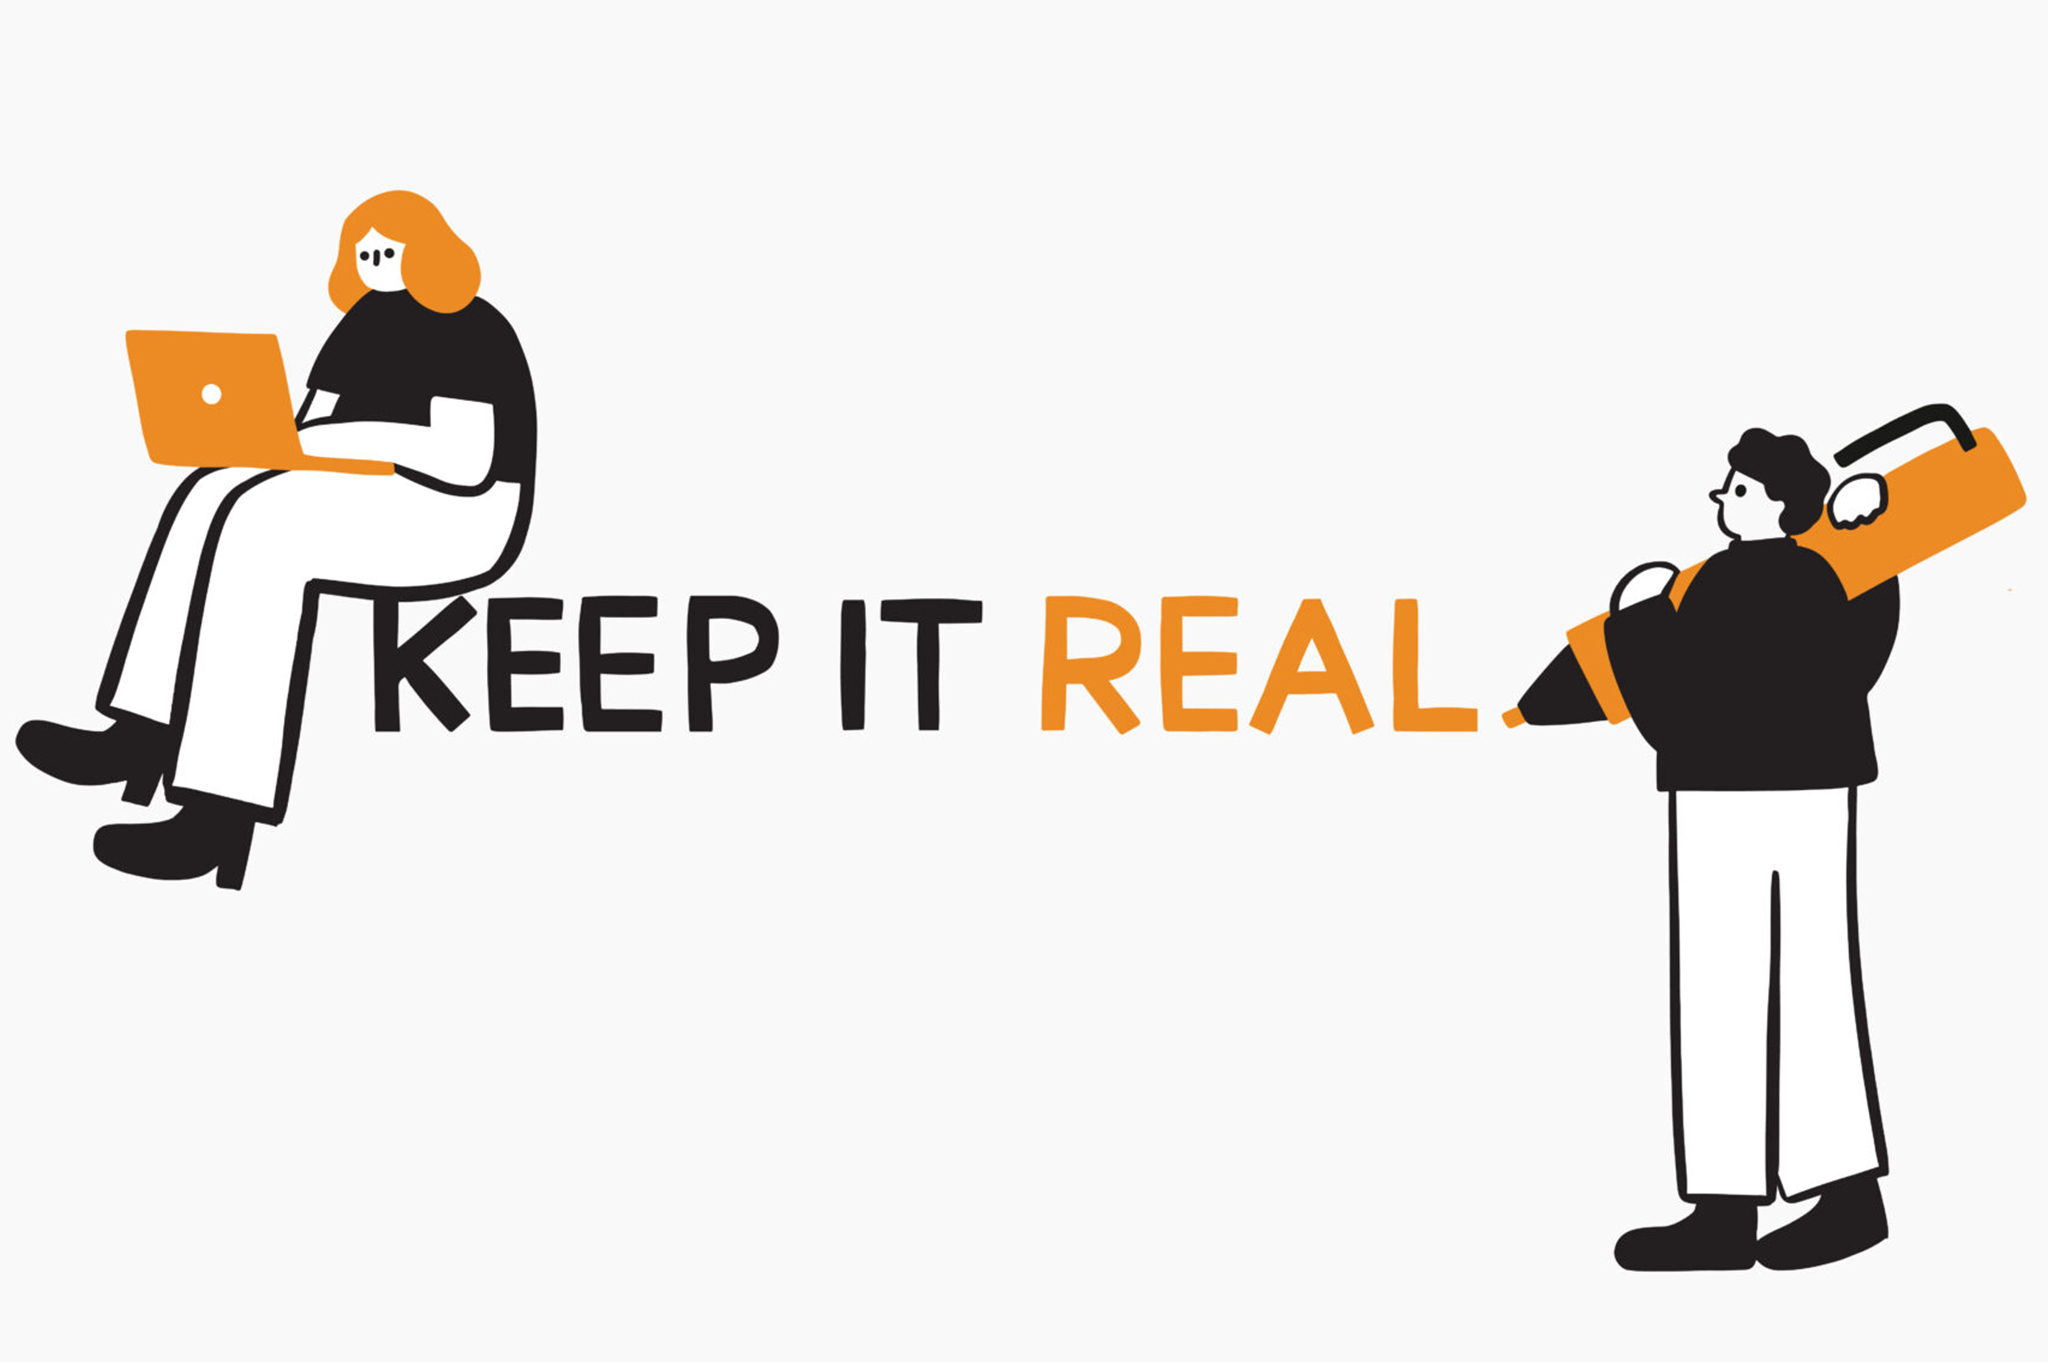 Keep It Real campaign